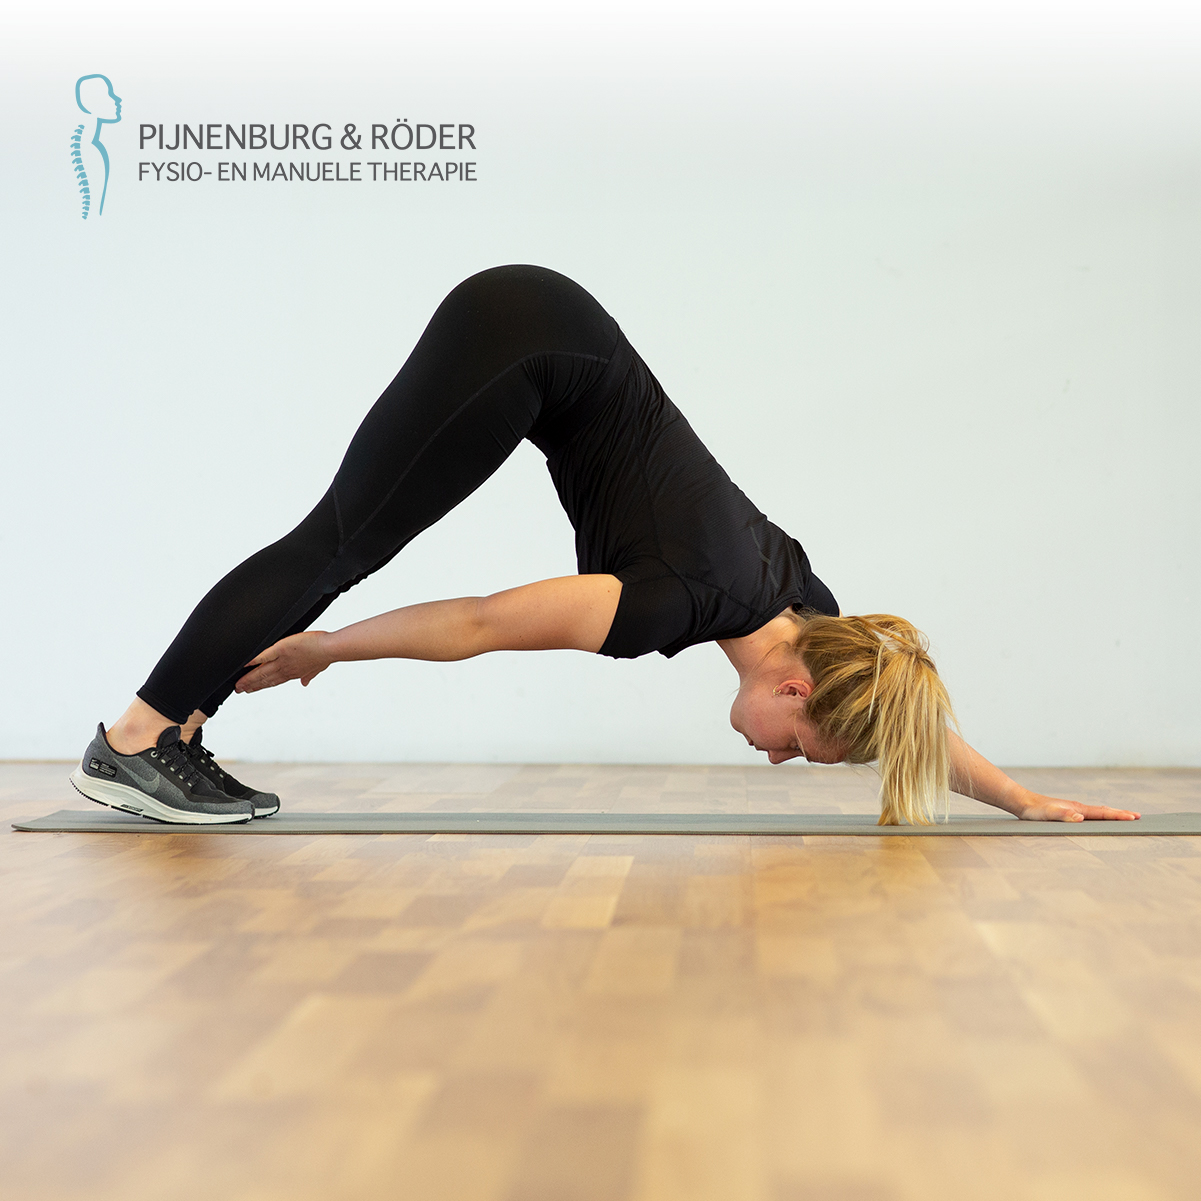 lage rug stabiliteit plank with alternating shin touch